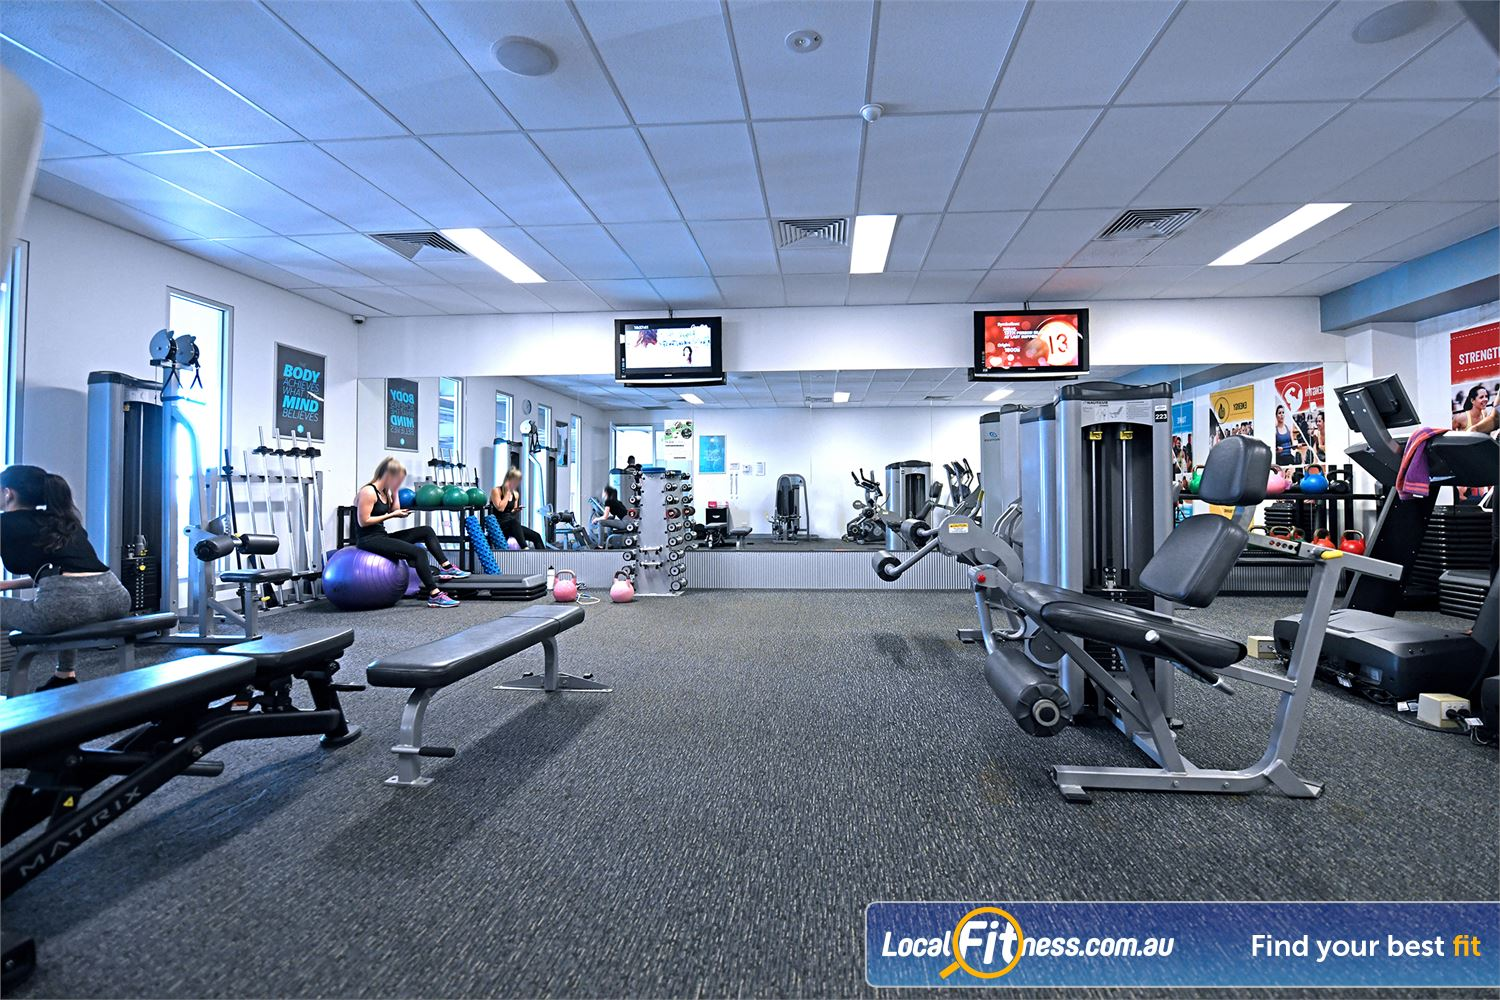 Goodlife Health Clubs Geelong Our Goodlife Club includes a private Geelong womens only gym area.